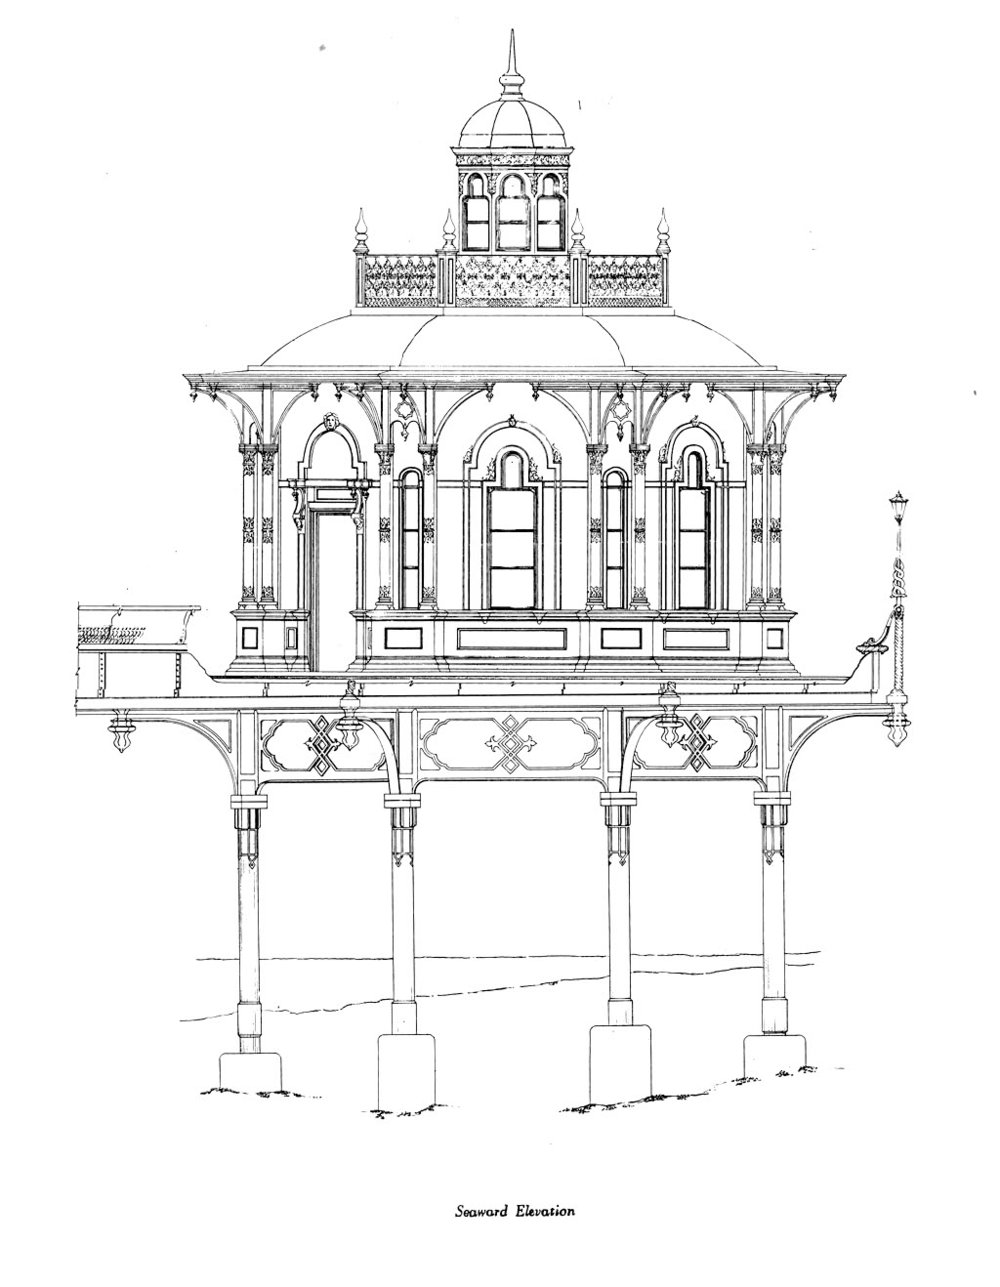 Proposed East Elevation, courtesy John Burrell